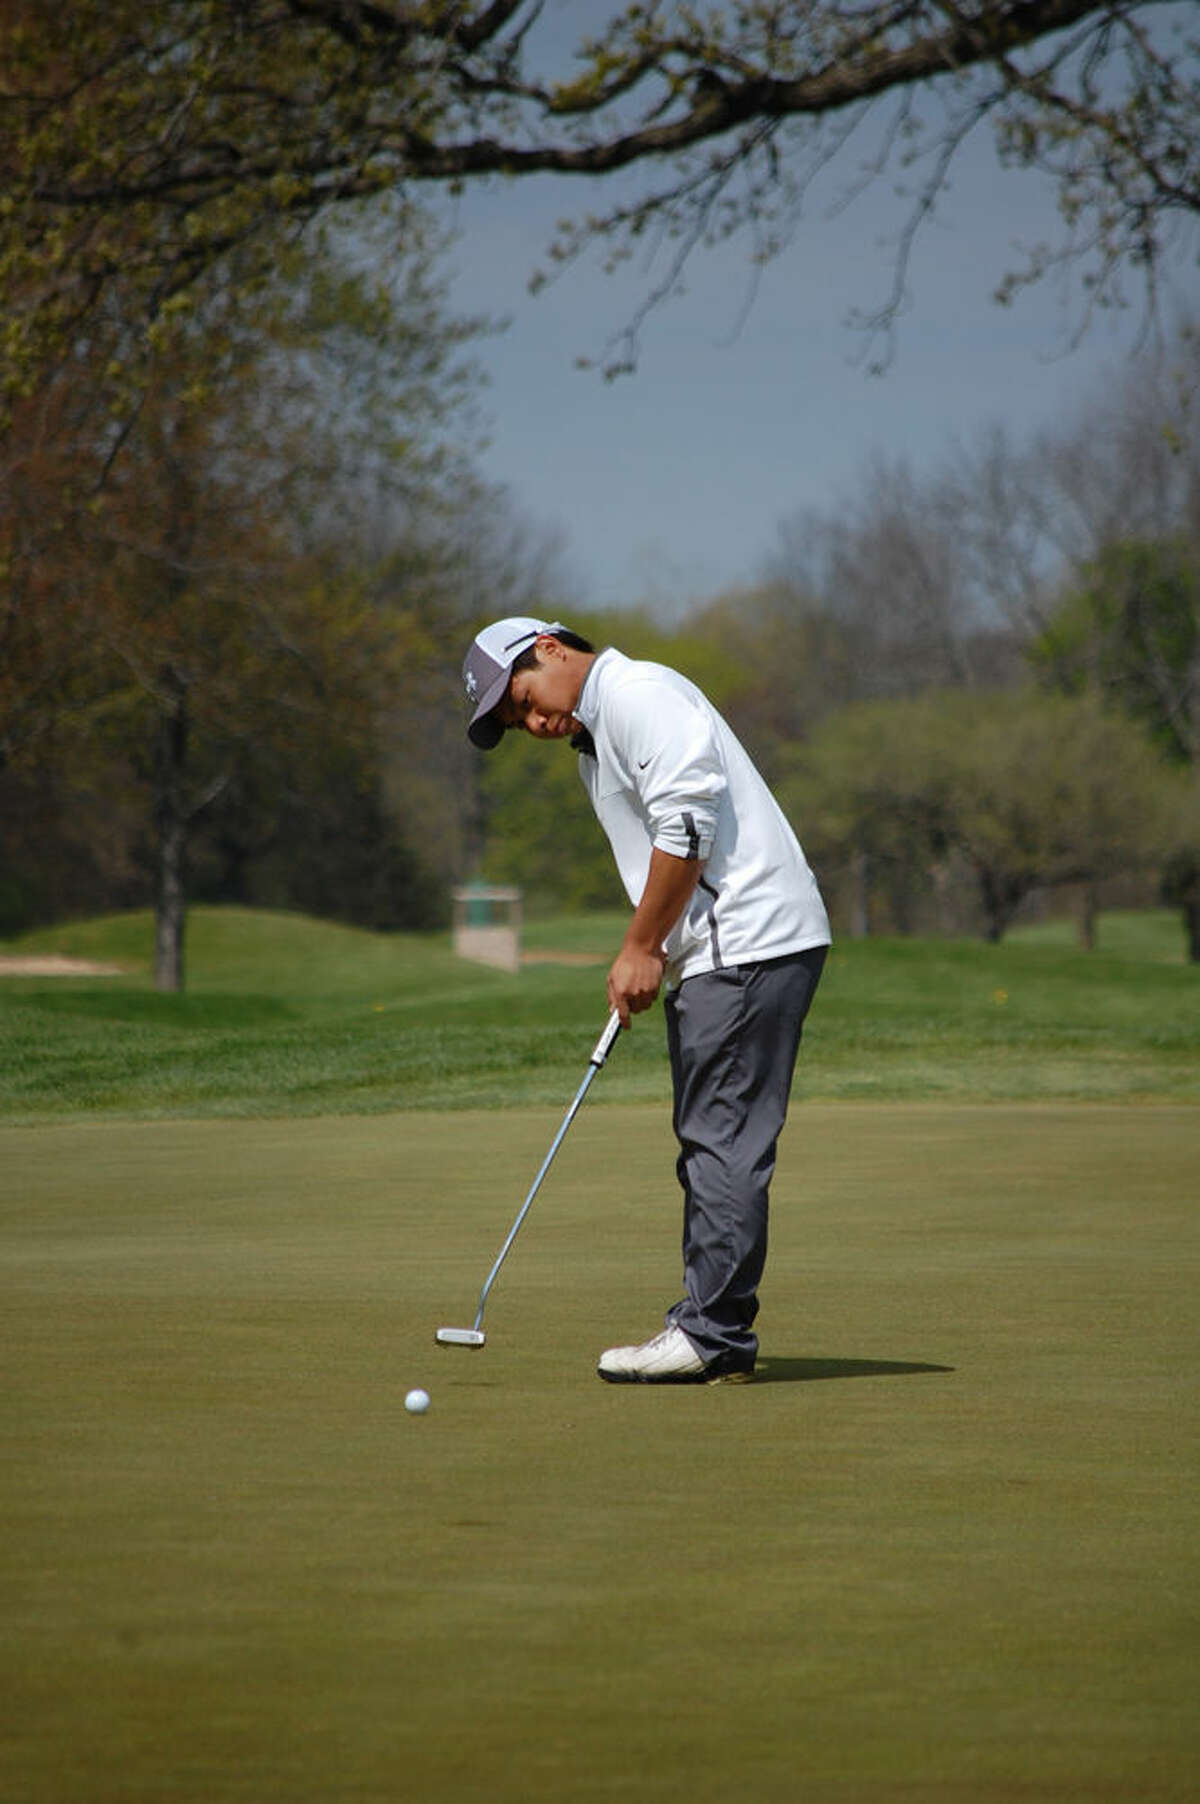 Midland High's Top Kamnark hopes to lead the Chemics golf team to a top five finish in the Division 1 state finals on Friday and Saturday.